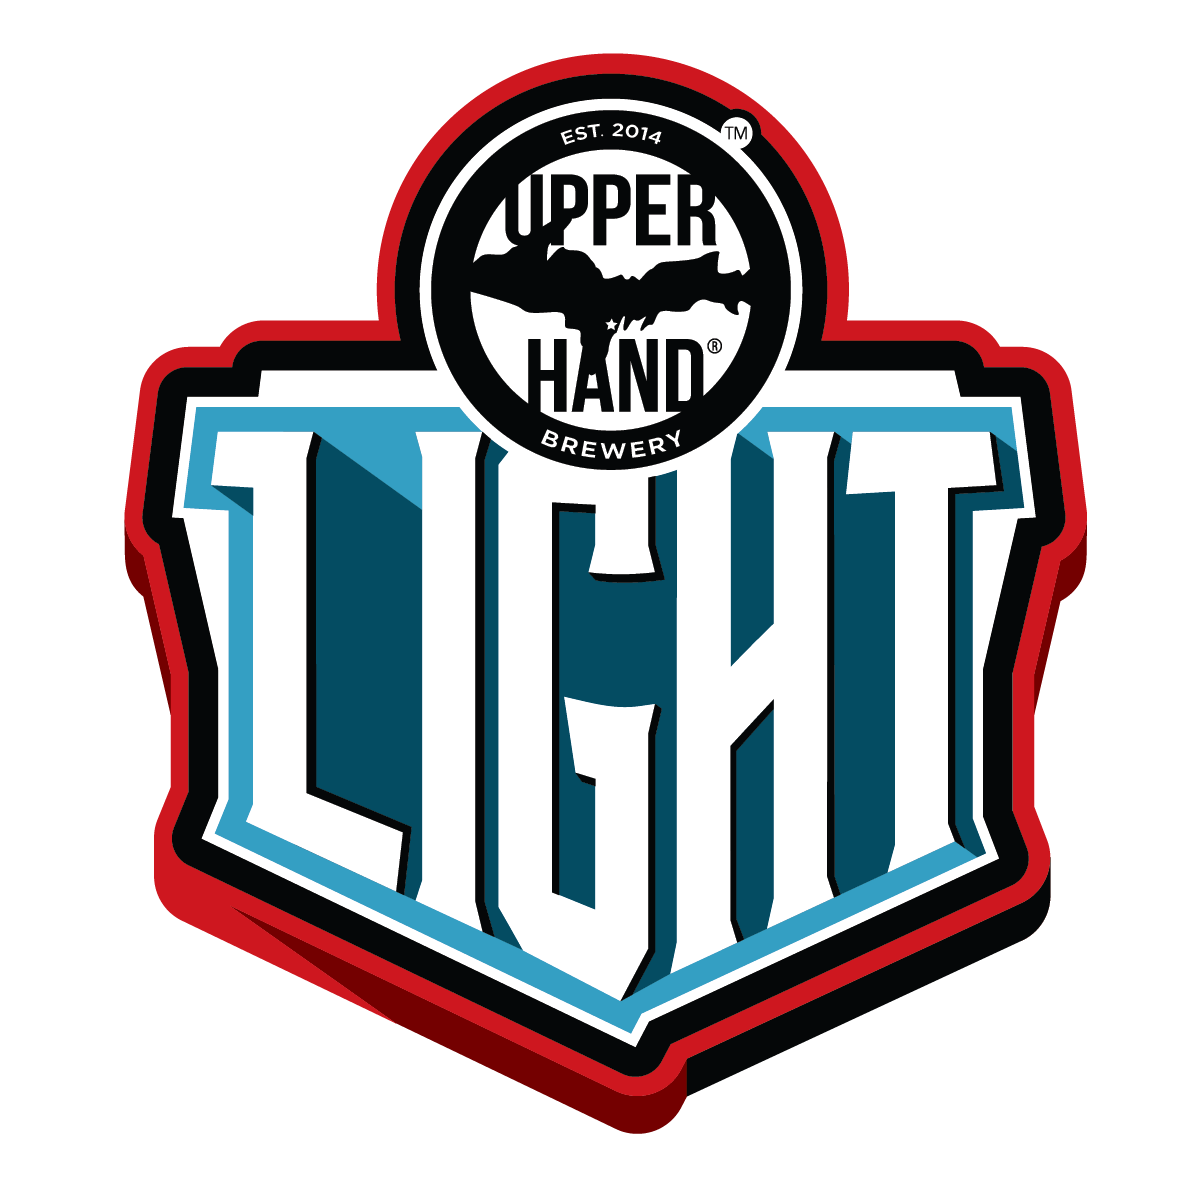 Upper Hand Light